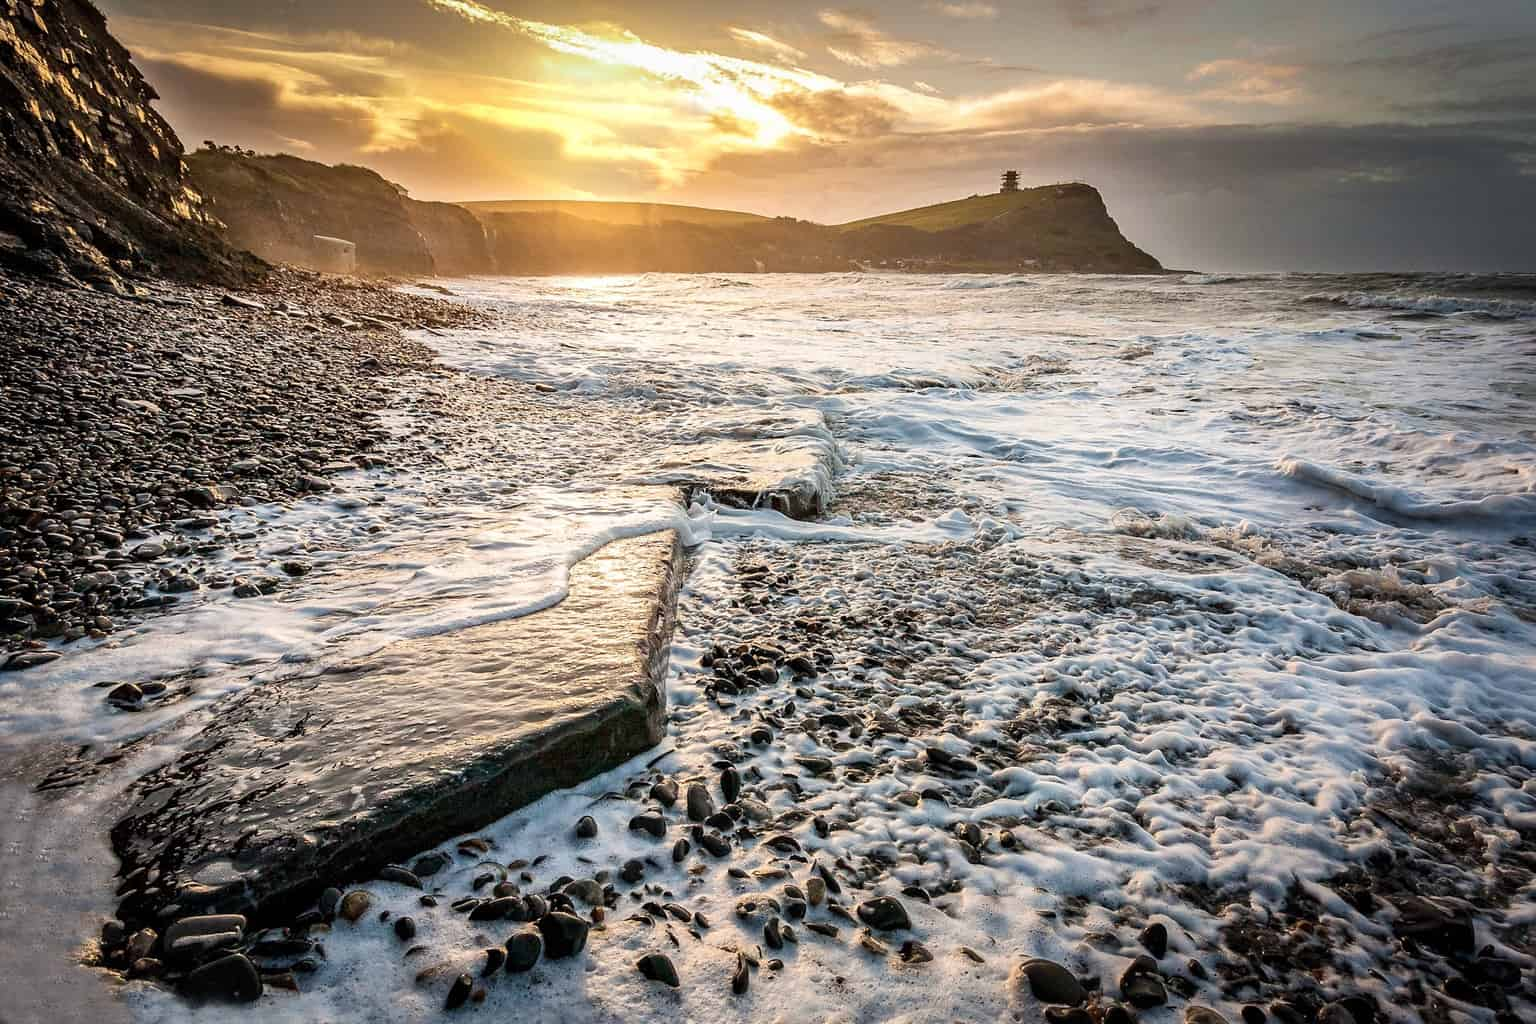 The picture of Kimmeridge Bay at sunrise with the rock in the foreground